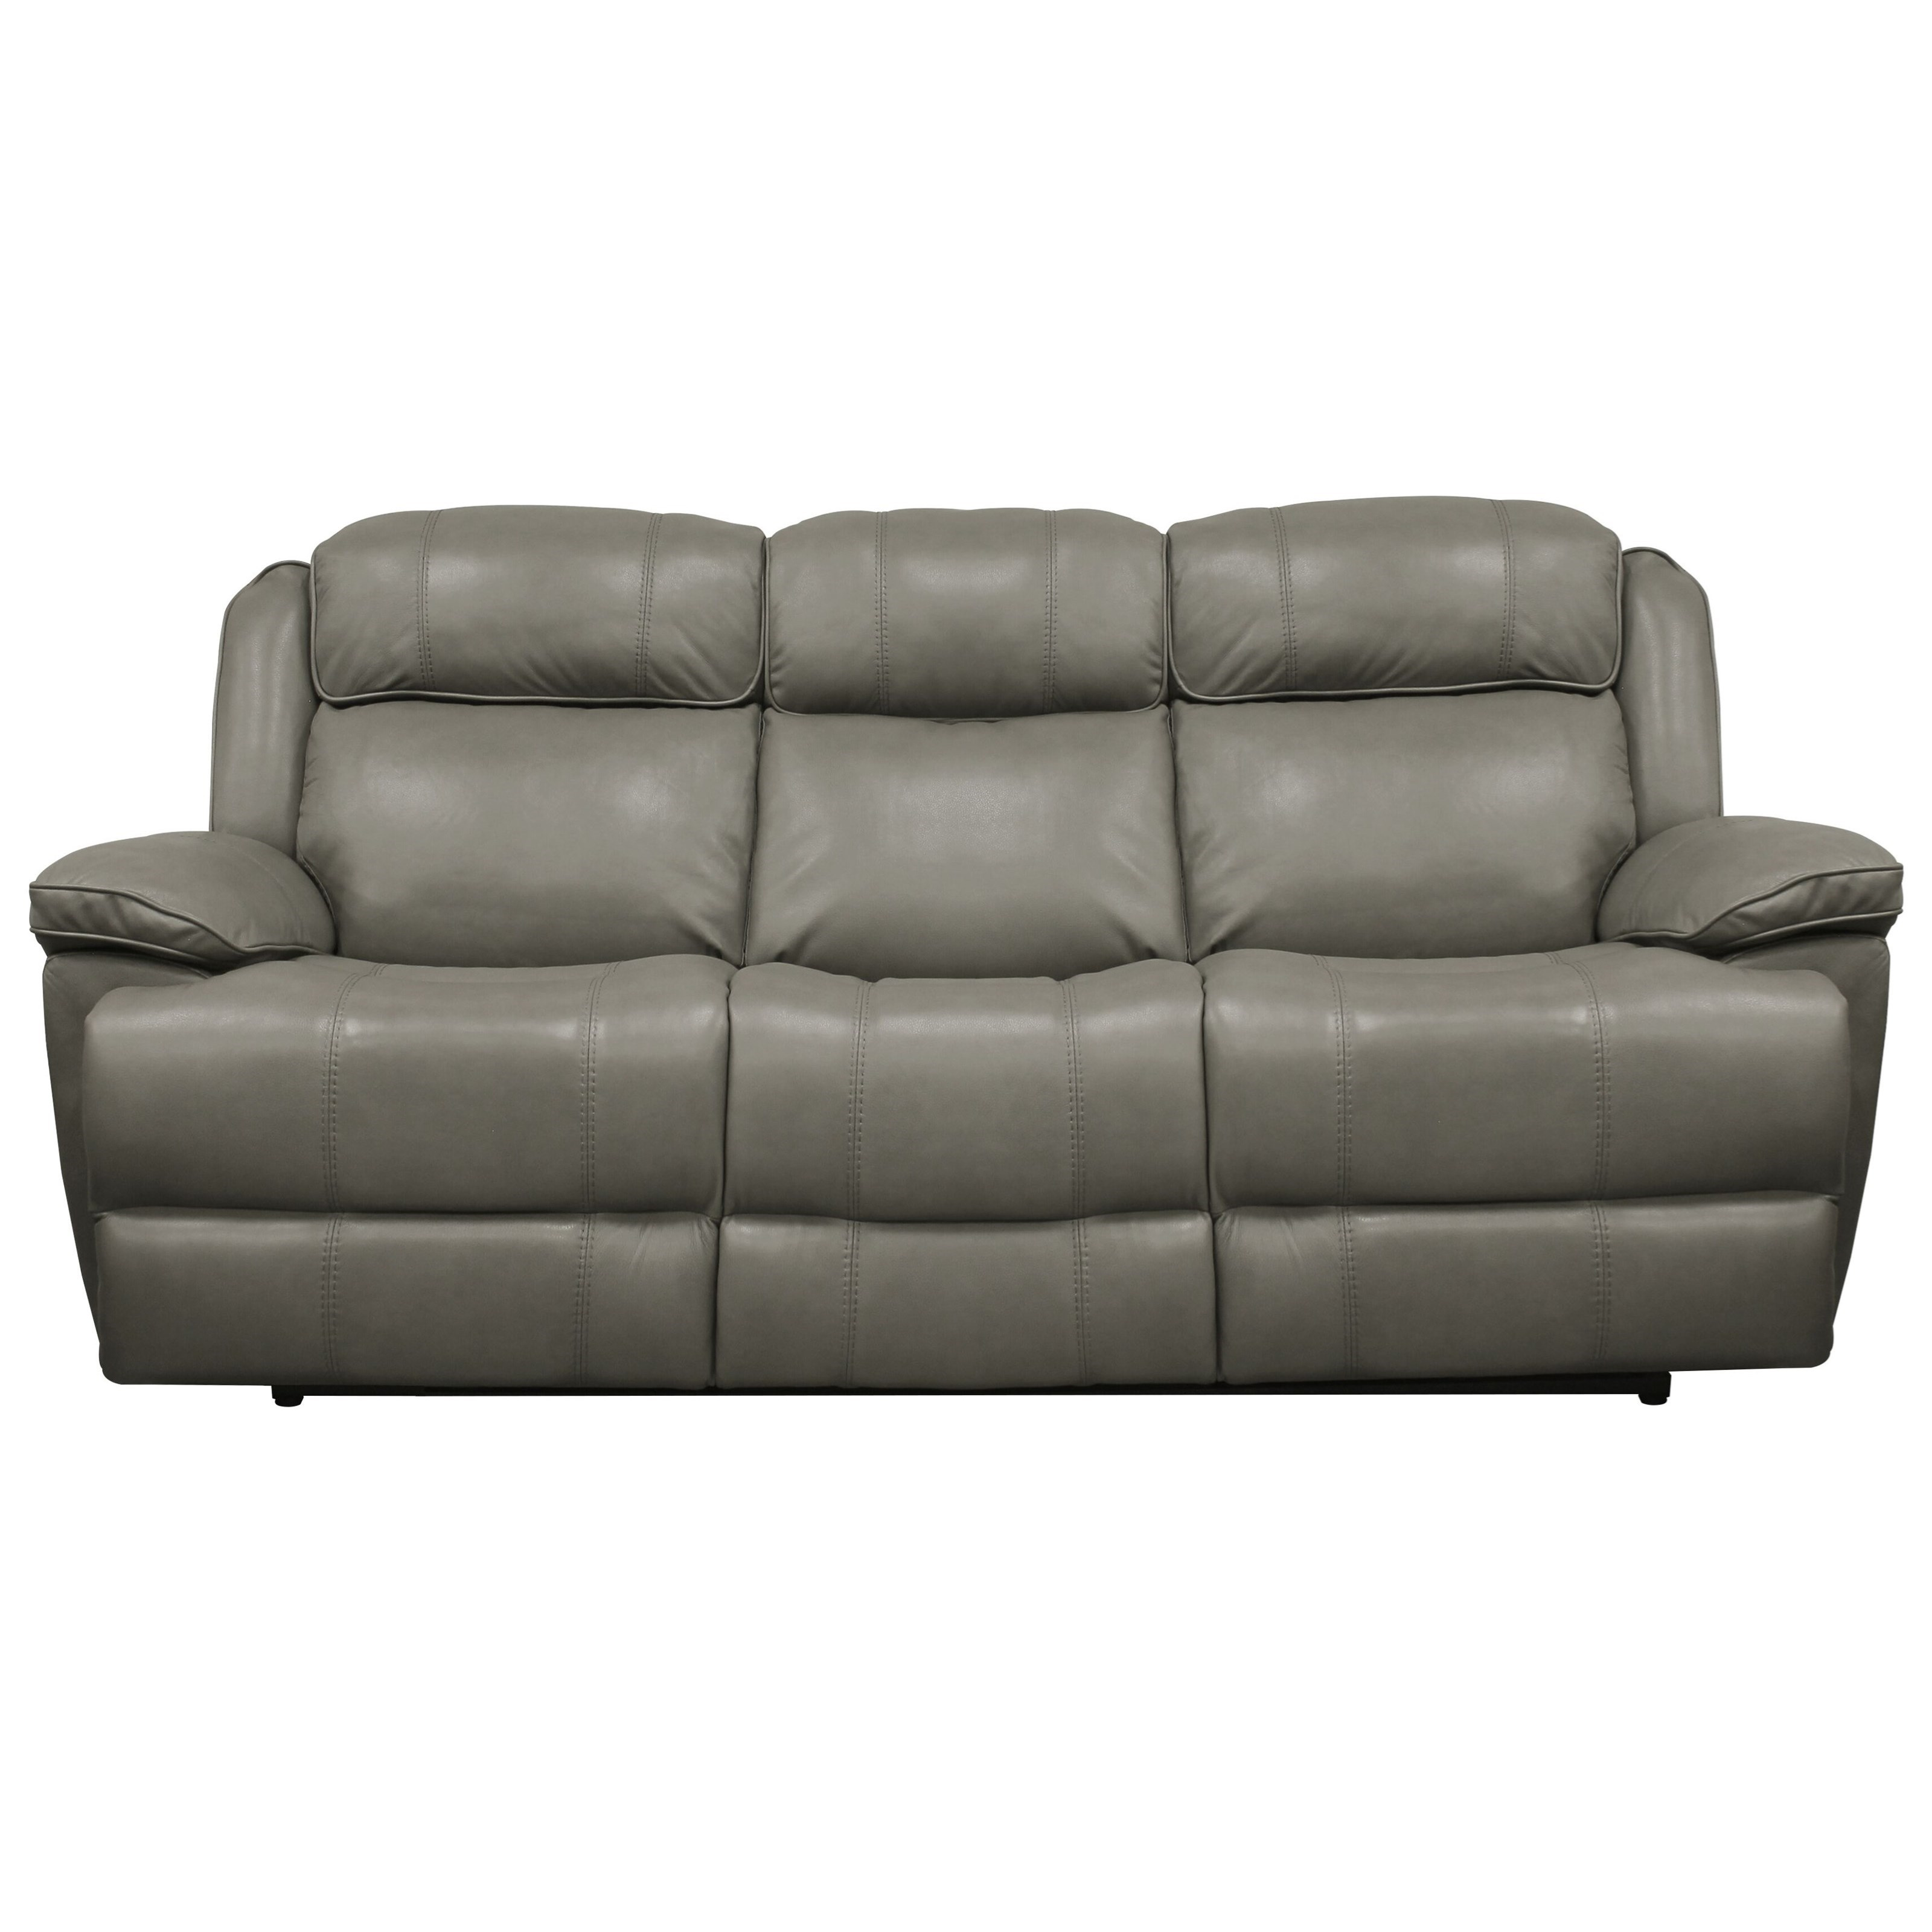 Eclipse Power Reclining Sofa by Parker Living at Godby Home Furnishings